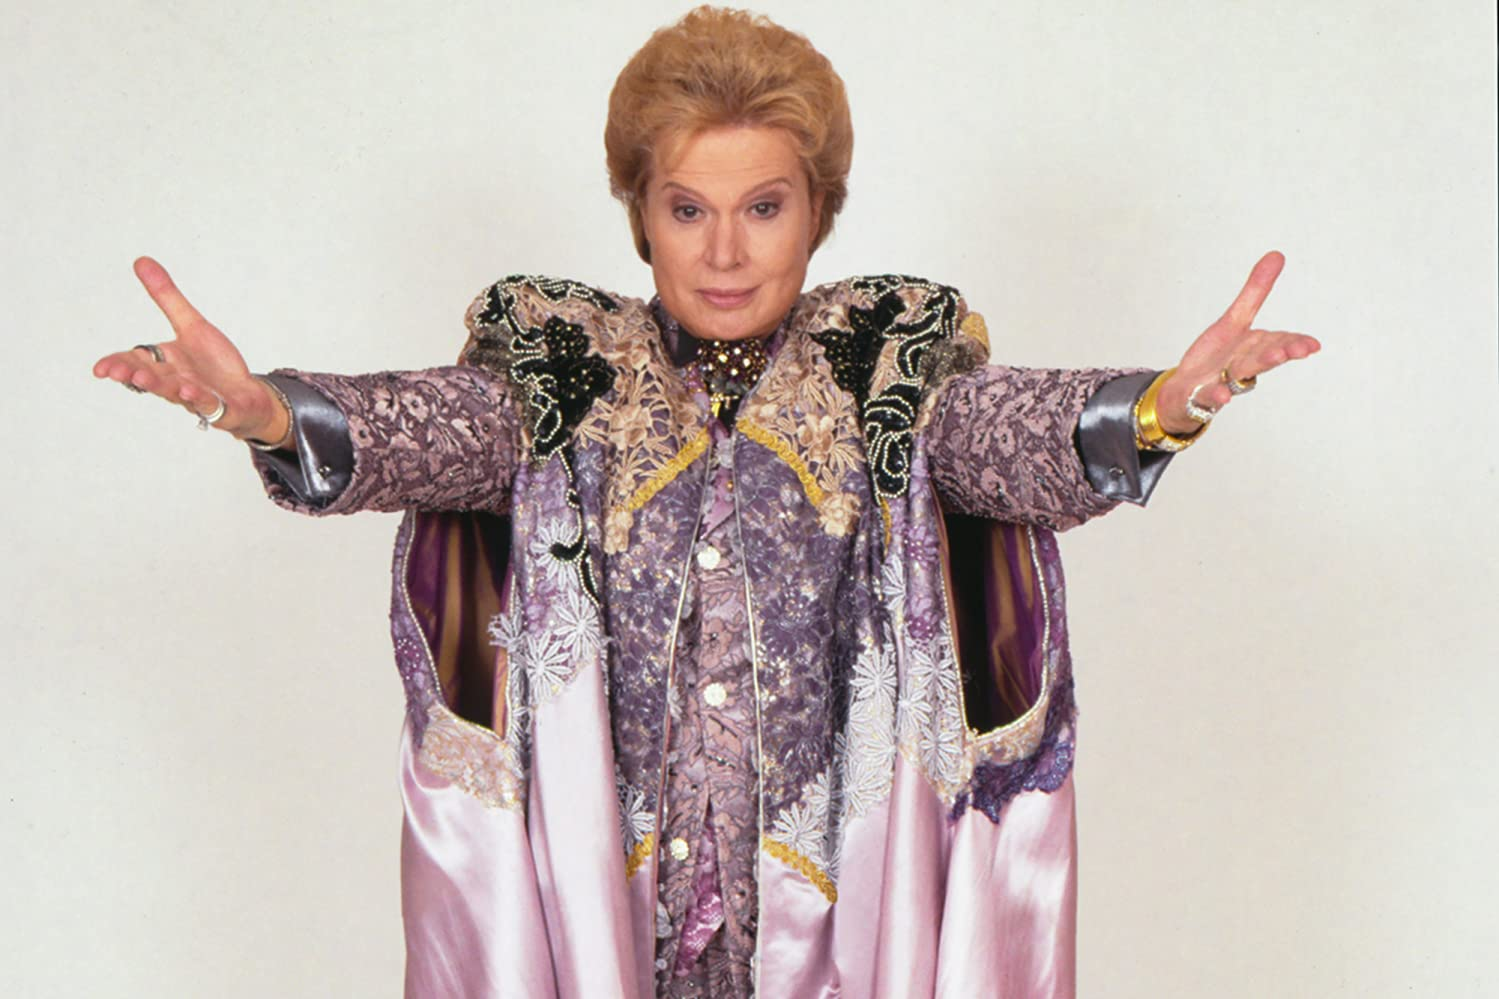 Walter Mercado stands arms spread out presenting himself. He wears an extravagant purple robe with intricate design.